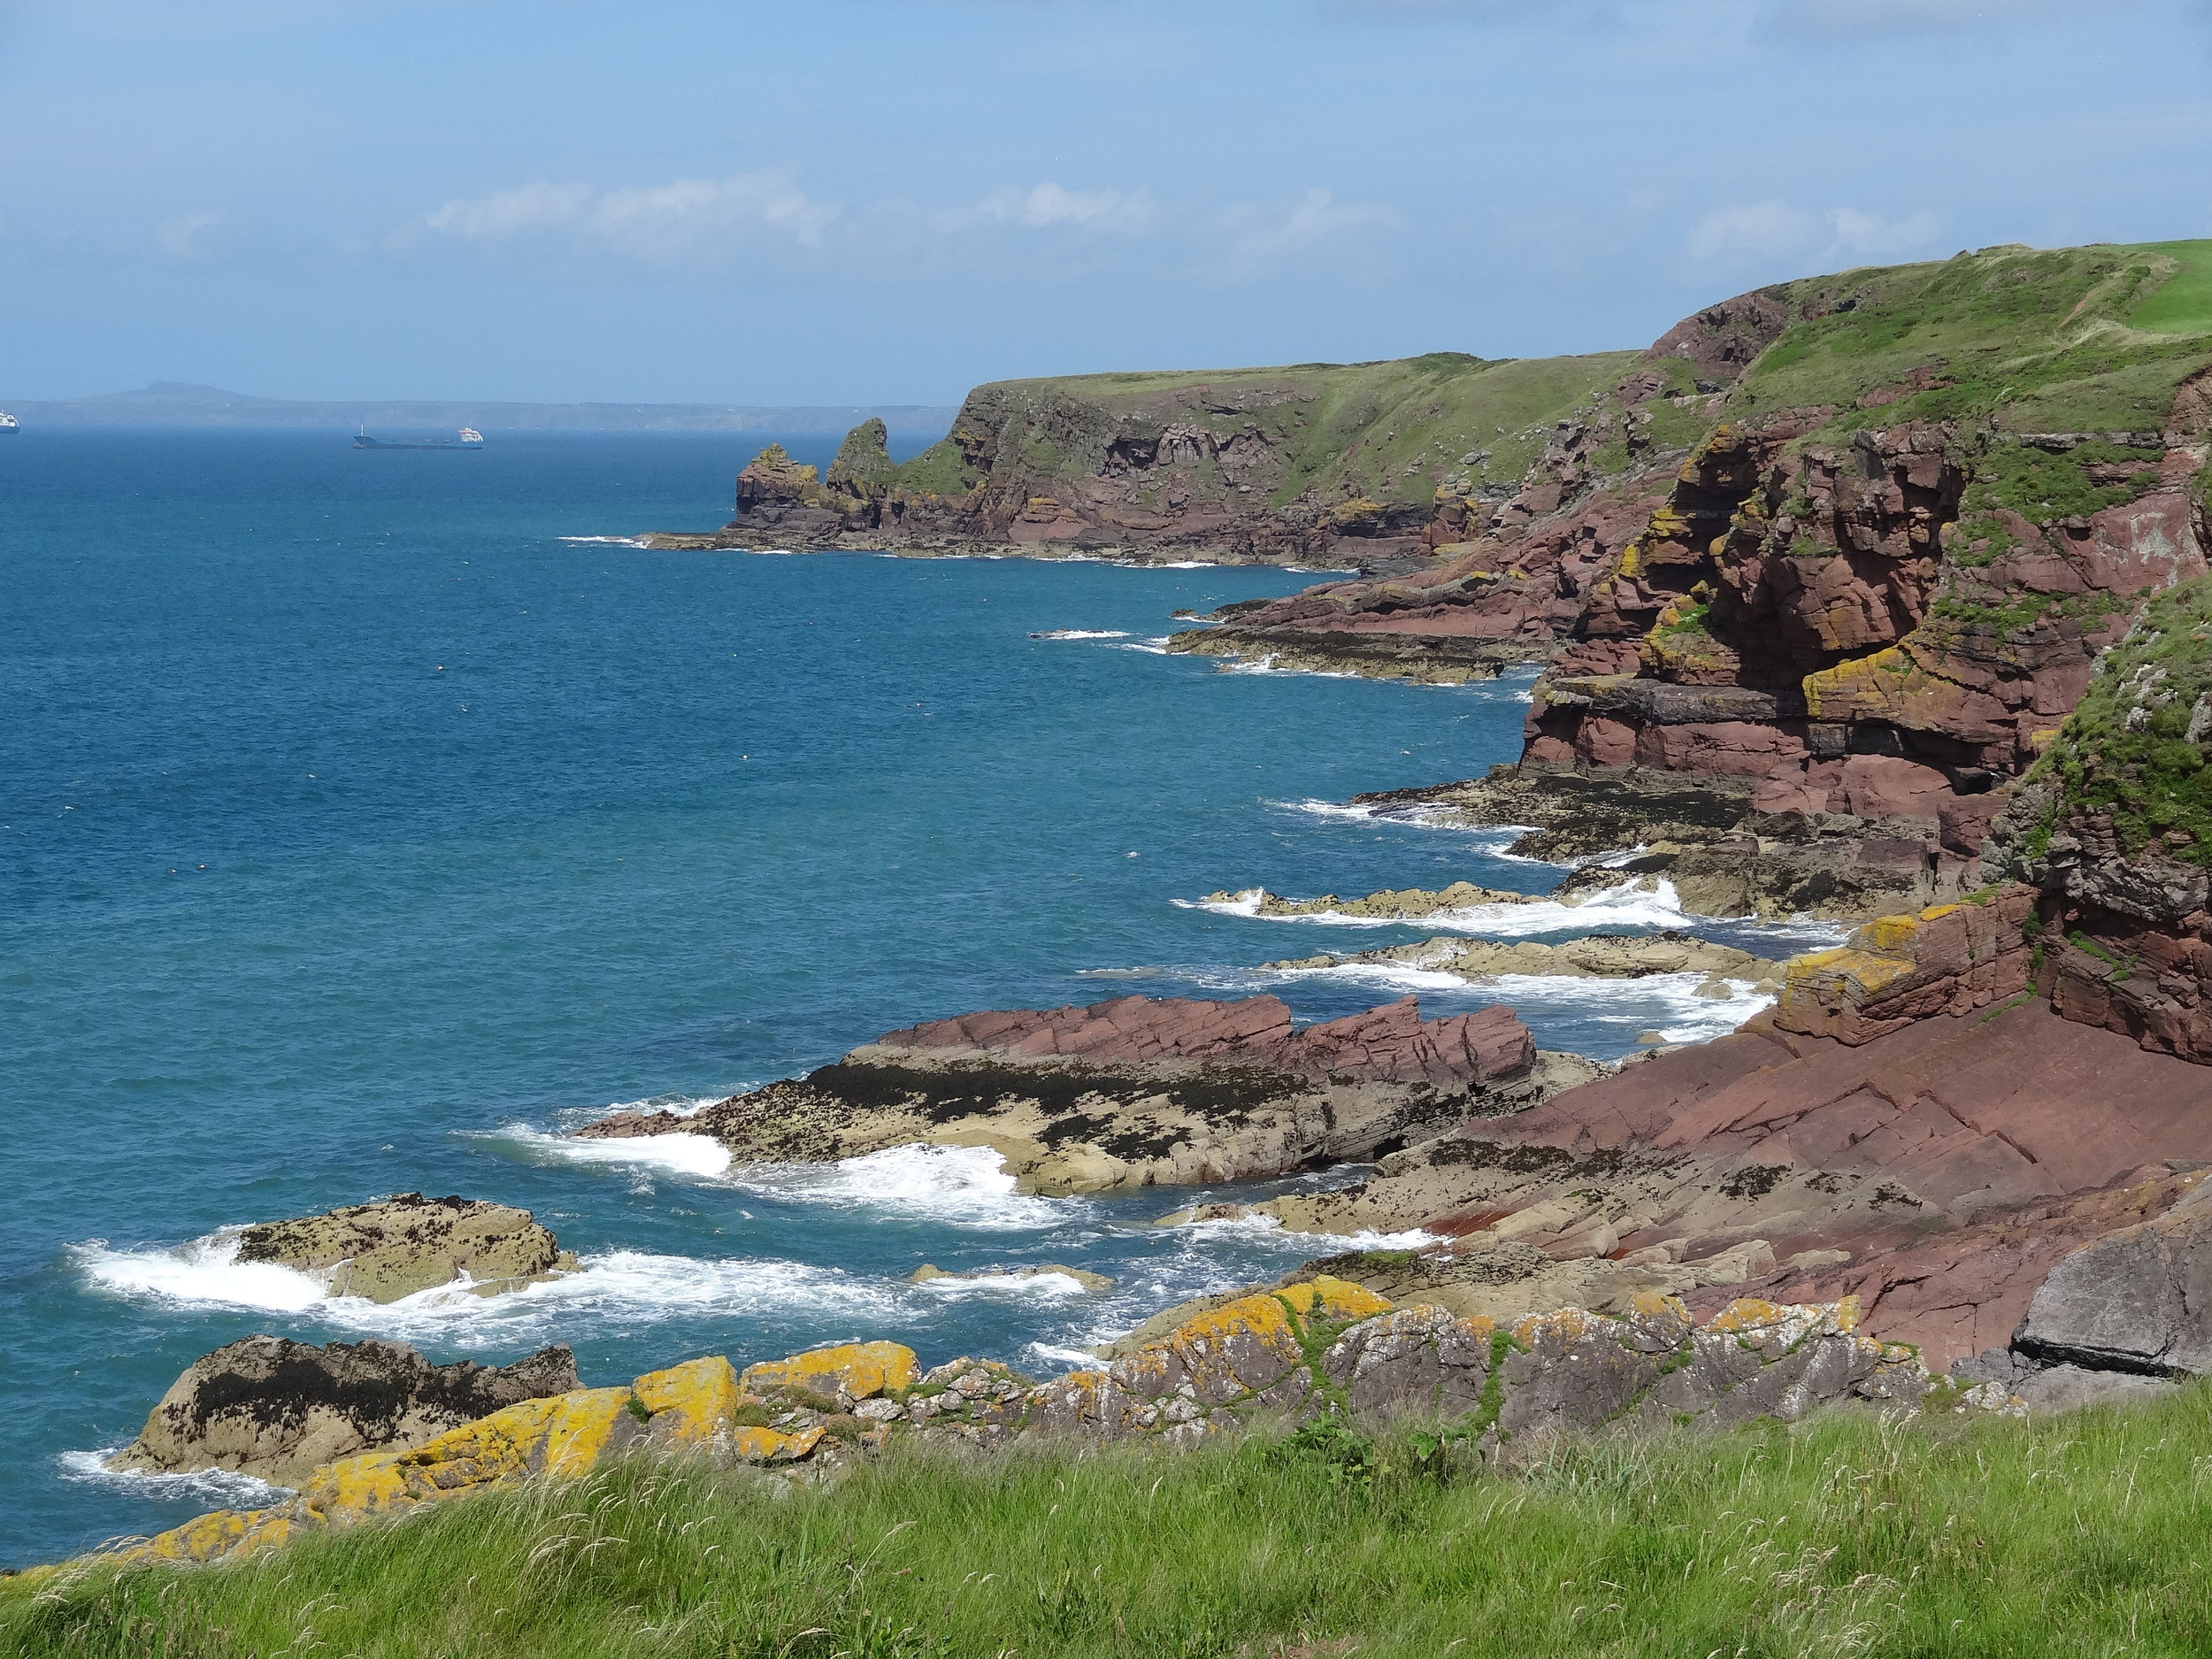 Along the Pembrokeshire Coast Path, the Irish Sea takes on a sparkling turquoise color in the sunshine.